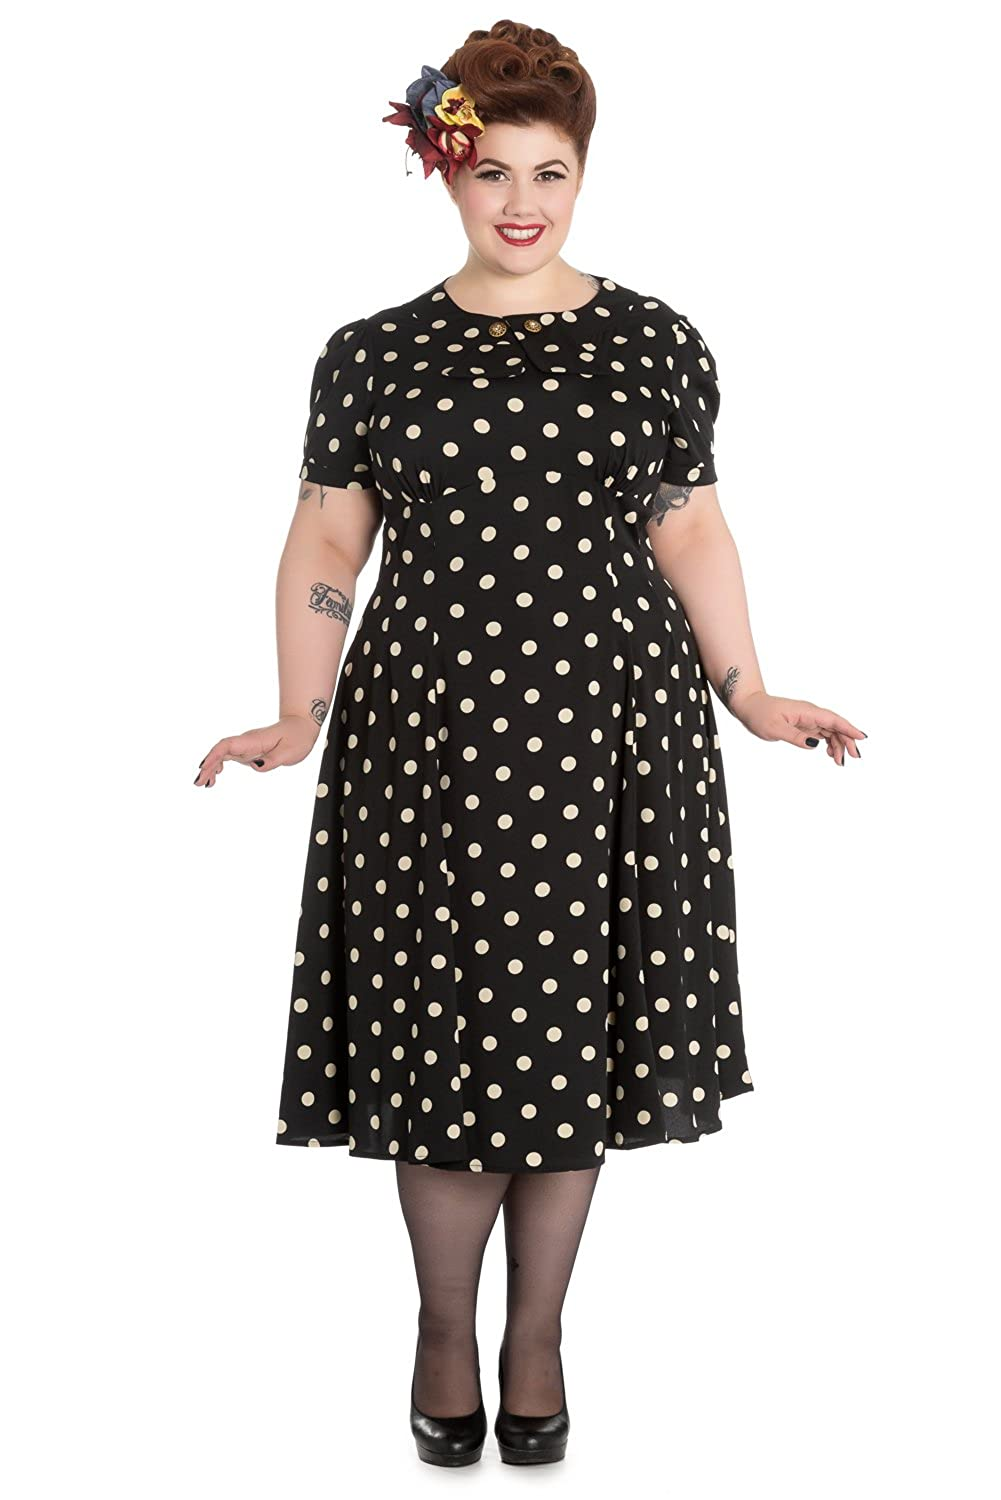 1940s Style Dresses and Clothing Hell Bunny Plus Size Sweet Office Lady Black Mod Polka Dot Dress $72.00 AT vintagedancer.com